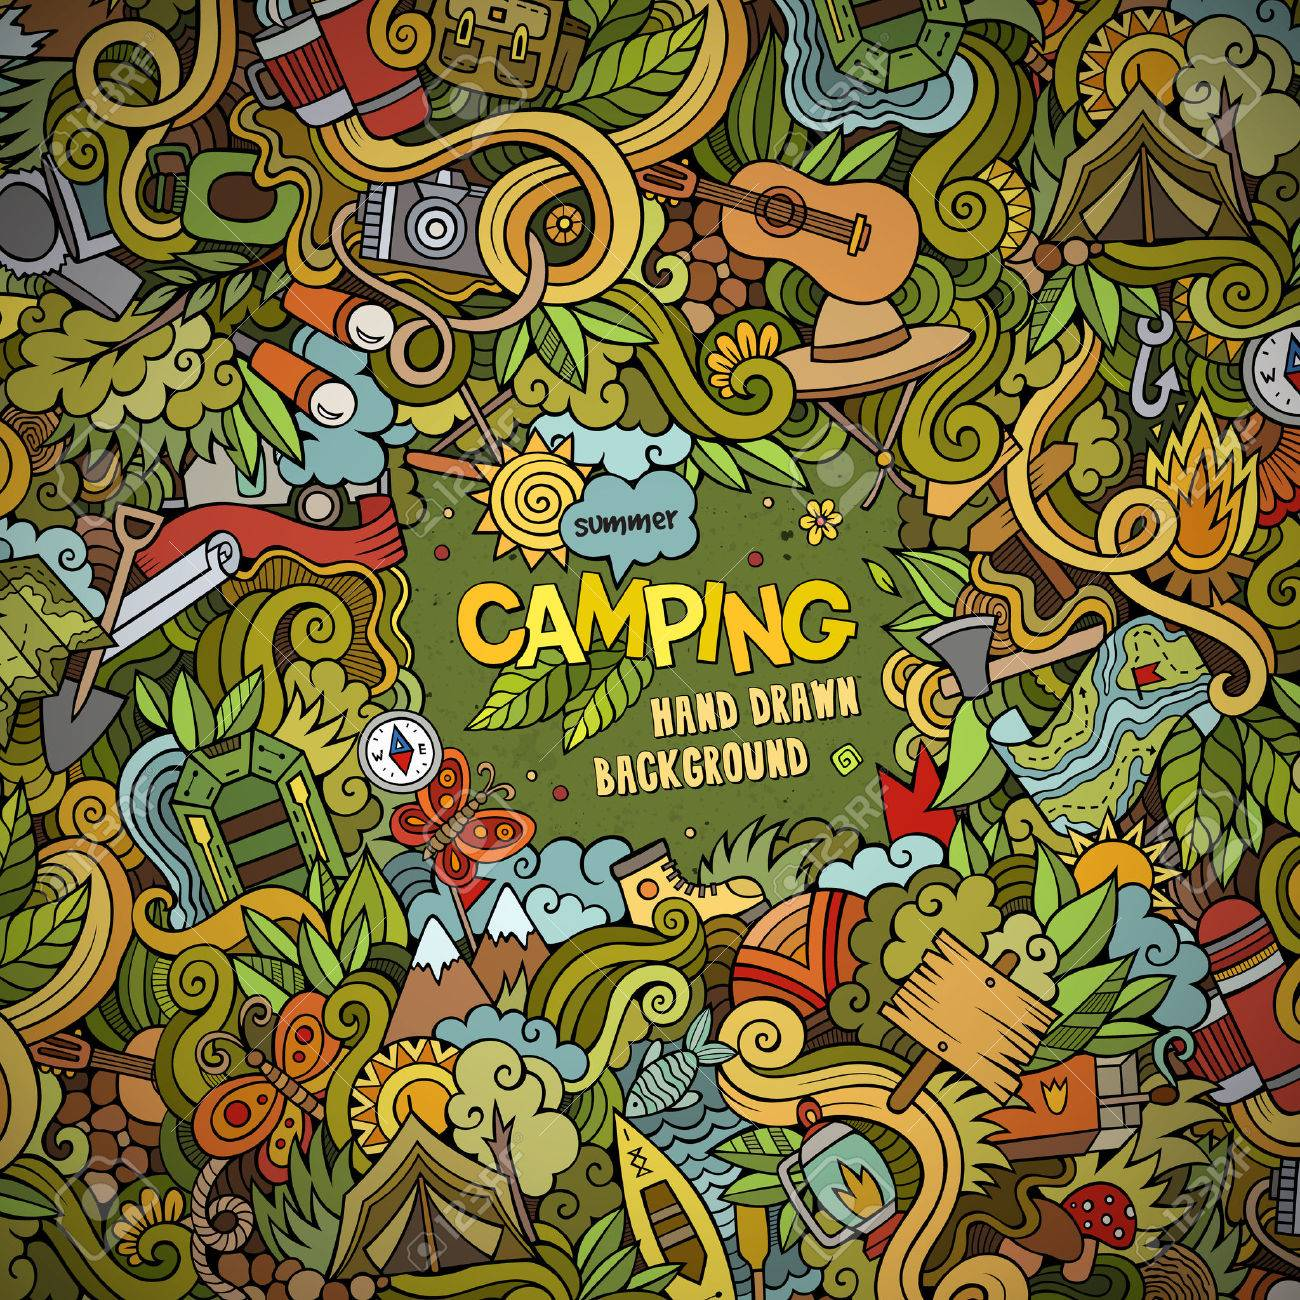 Cartoon vector doodles hand drawn Camping frame background - 41698621